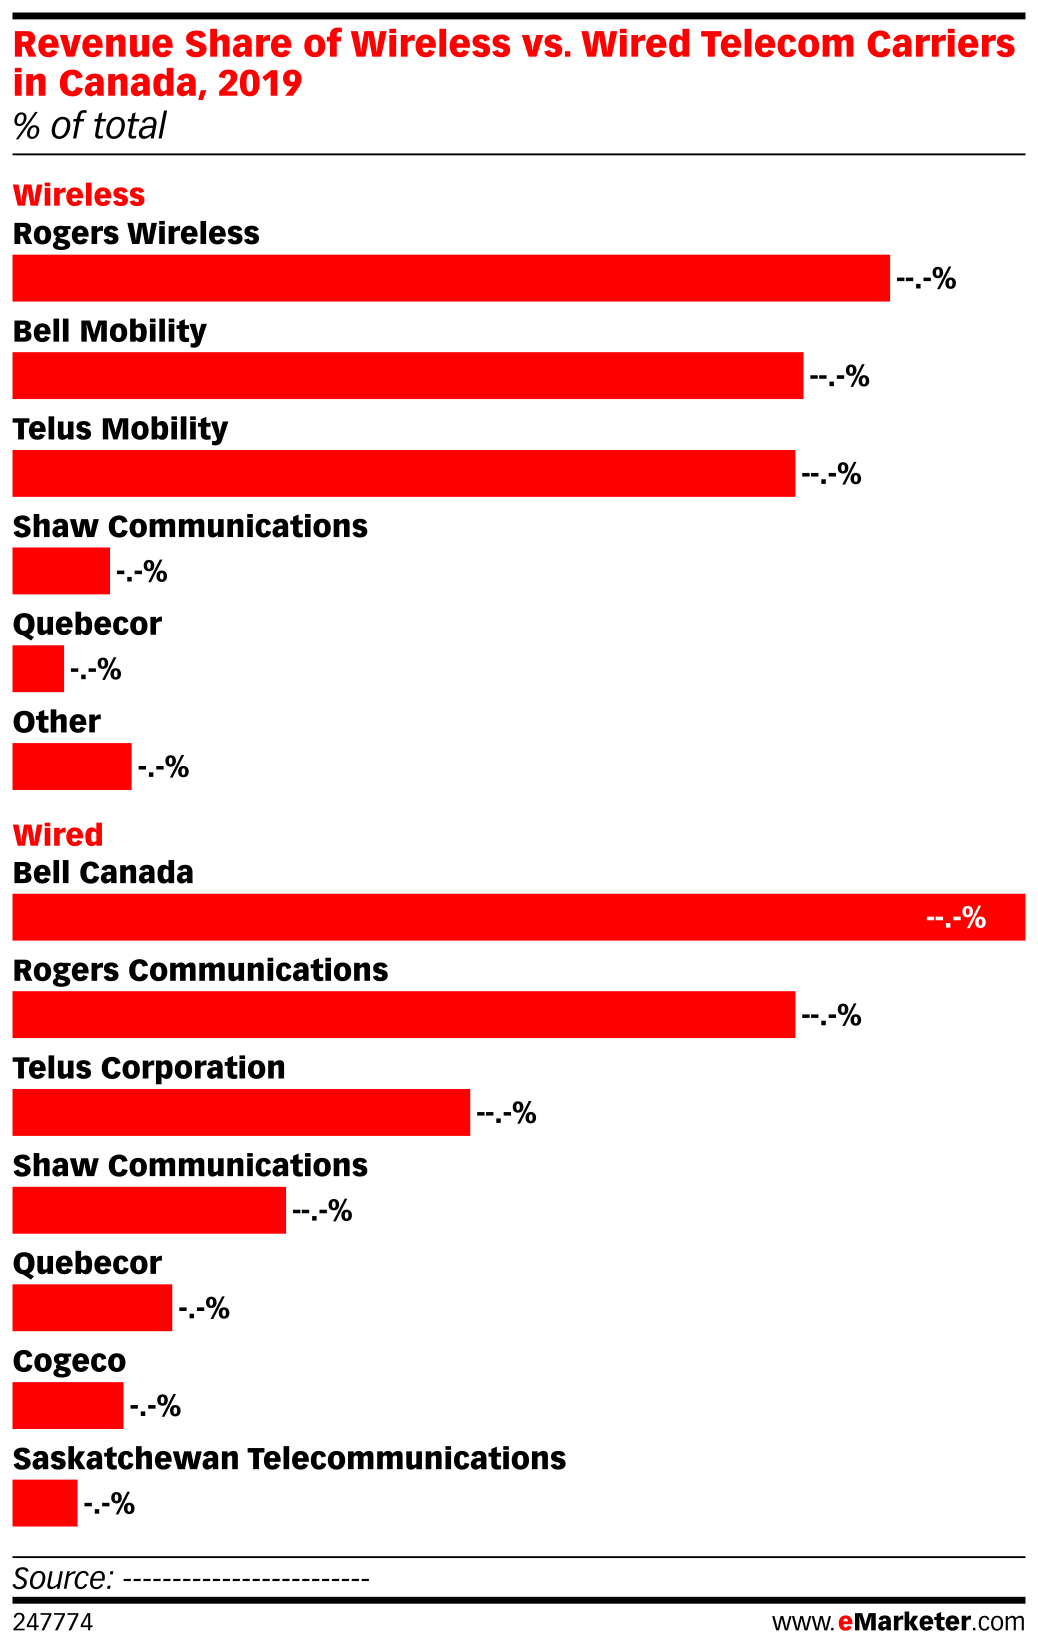 Revenue Share of Wireless vs. Wired Telecom Carriers in Canada, 2019 (% of total)